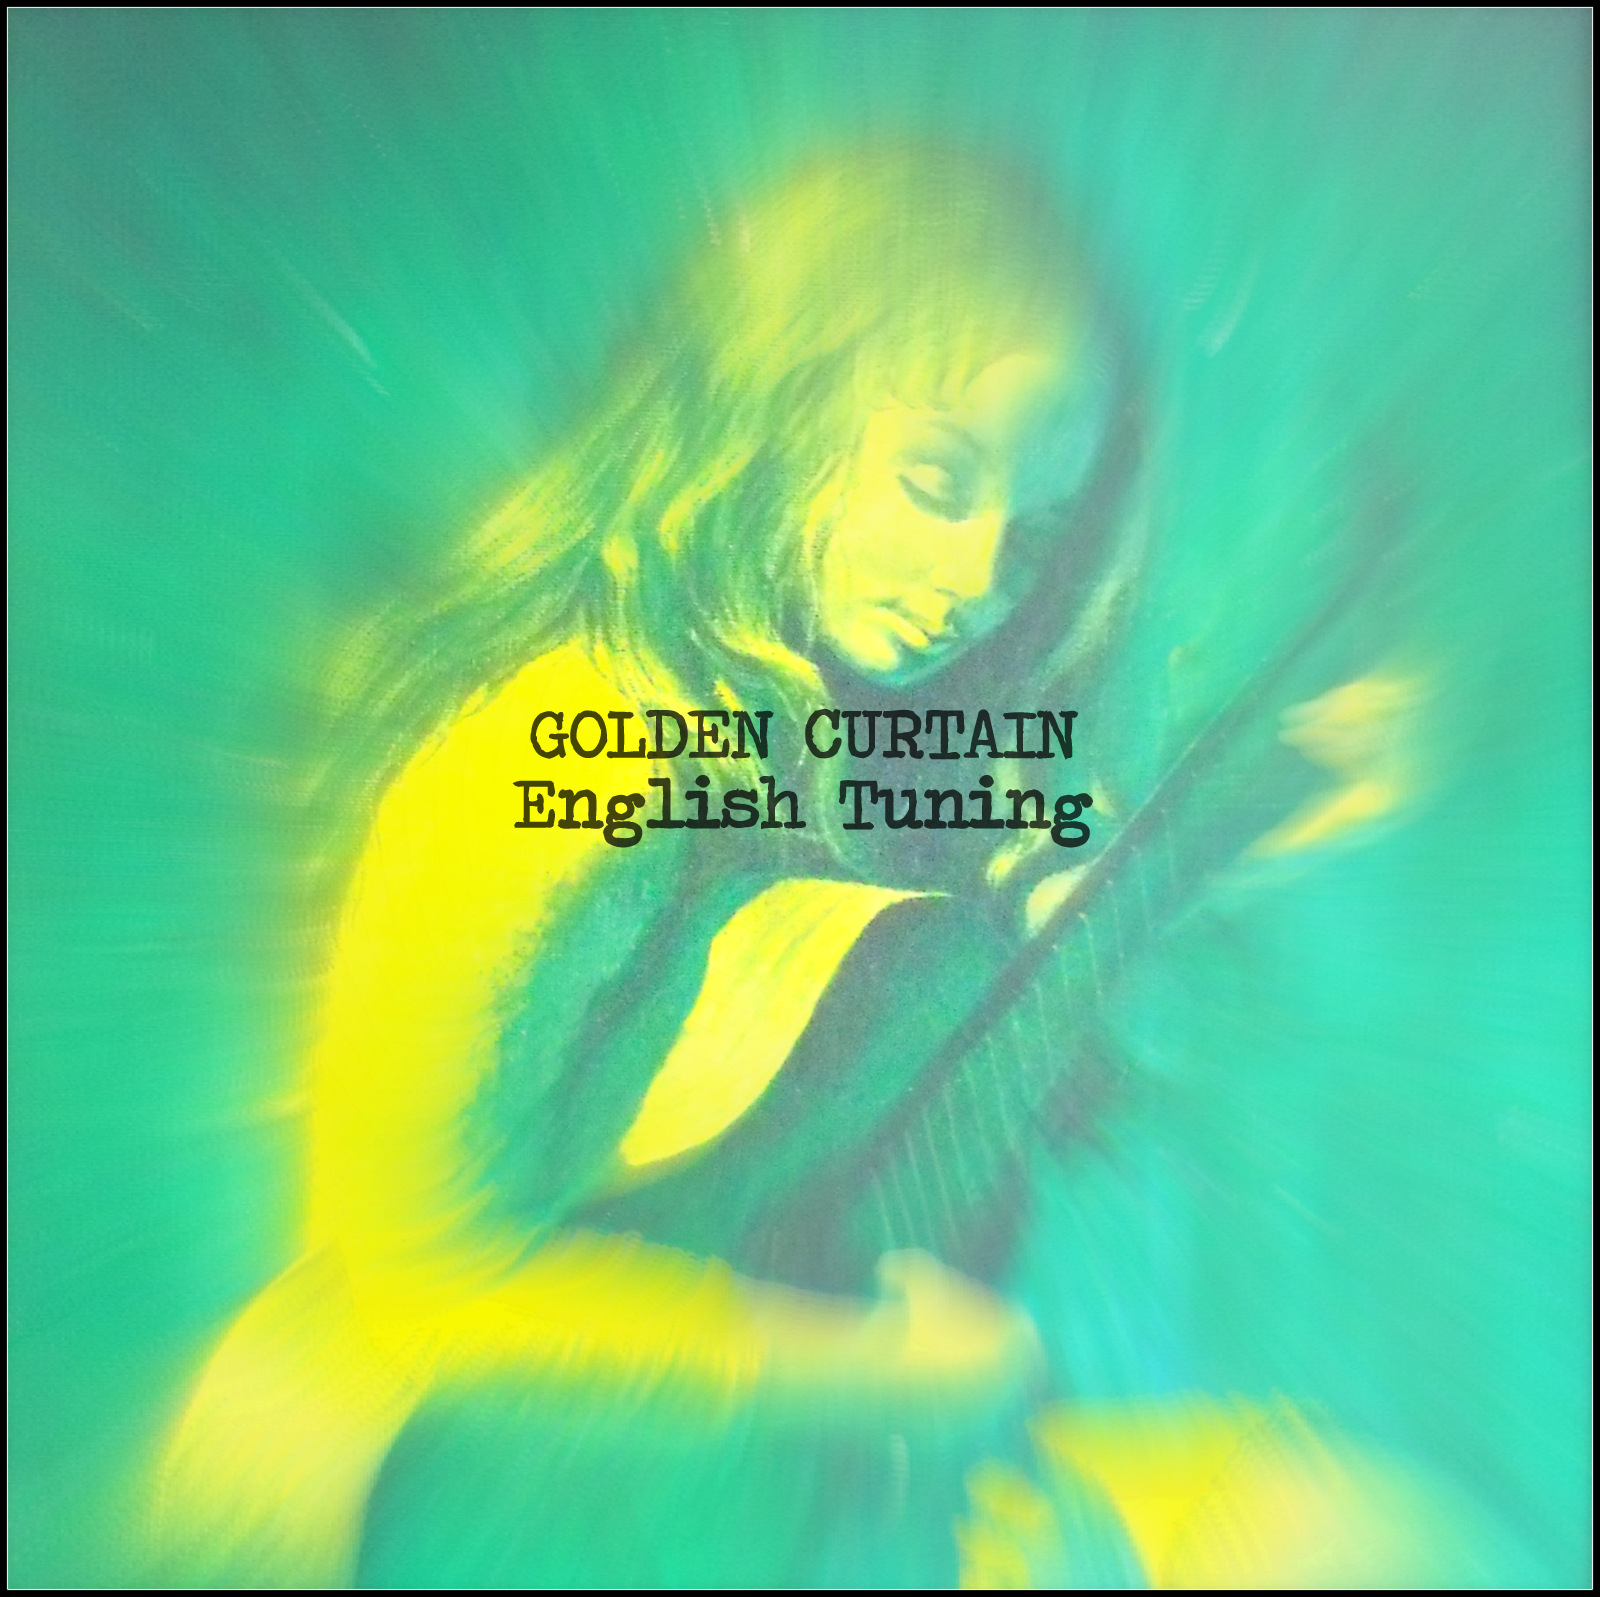 Textured Pop Majesty: Golden Curtain's English Tuning